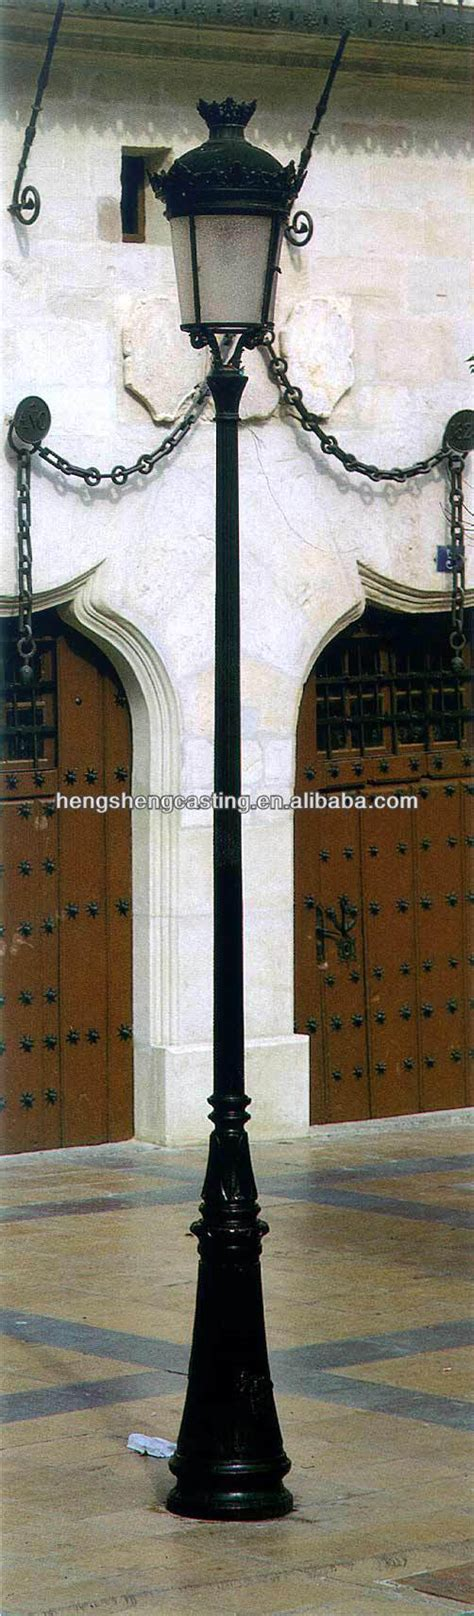 antique street ls suppliers china suppliers outdoor antique cast iron street lighting